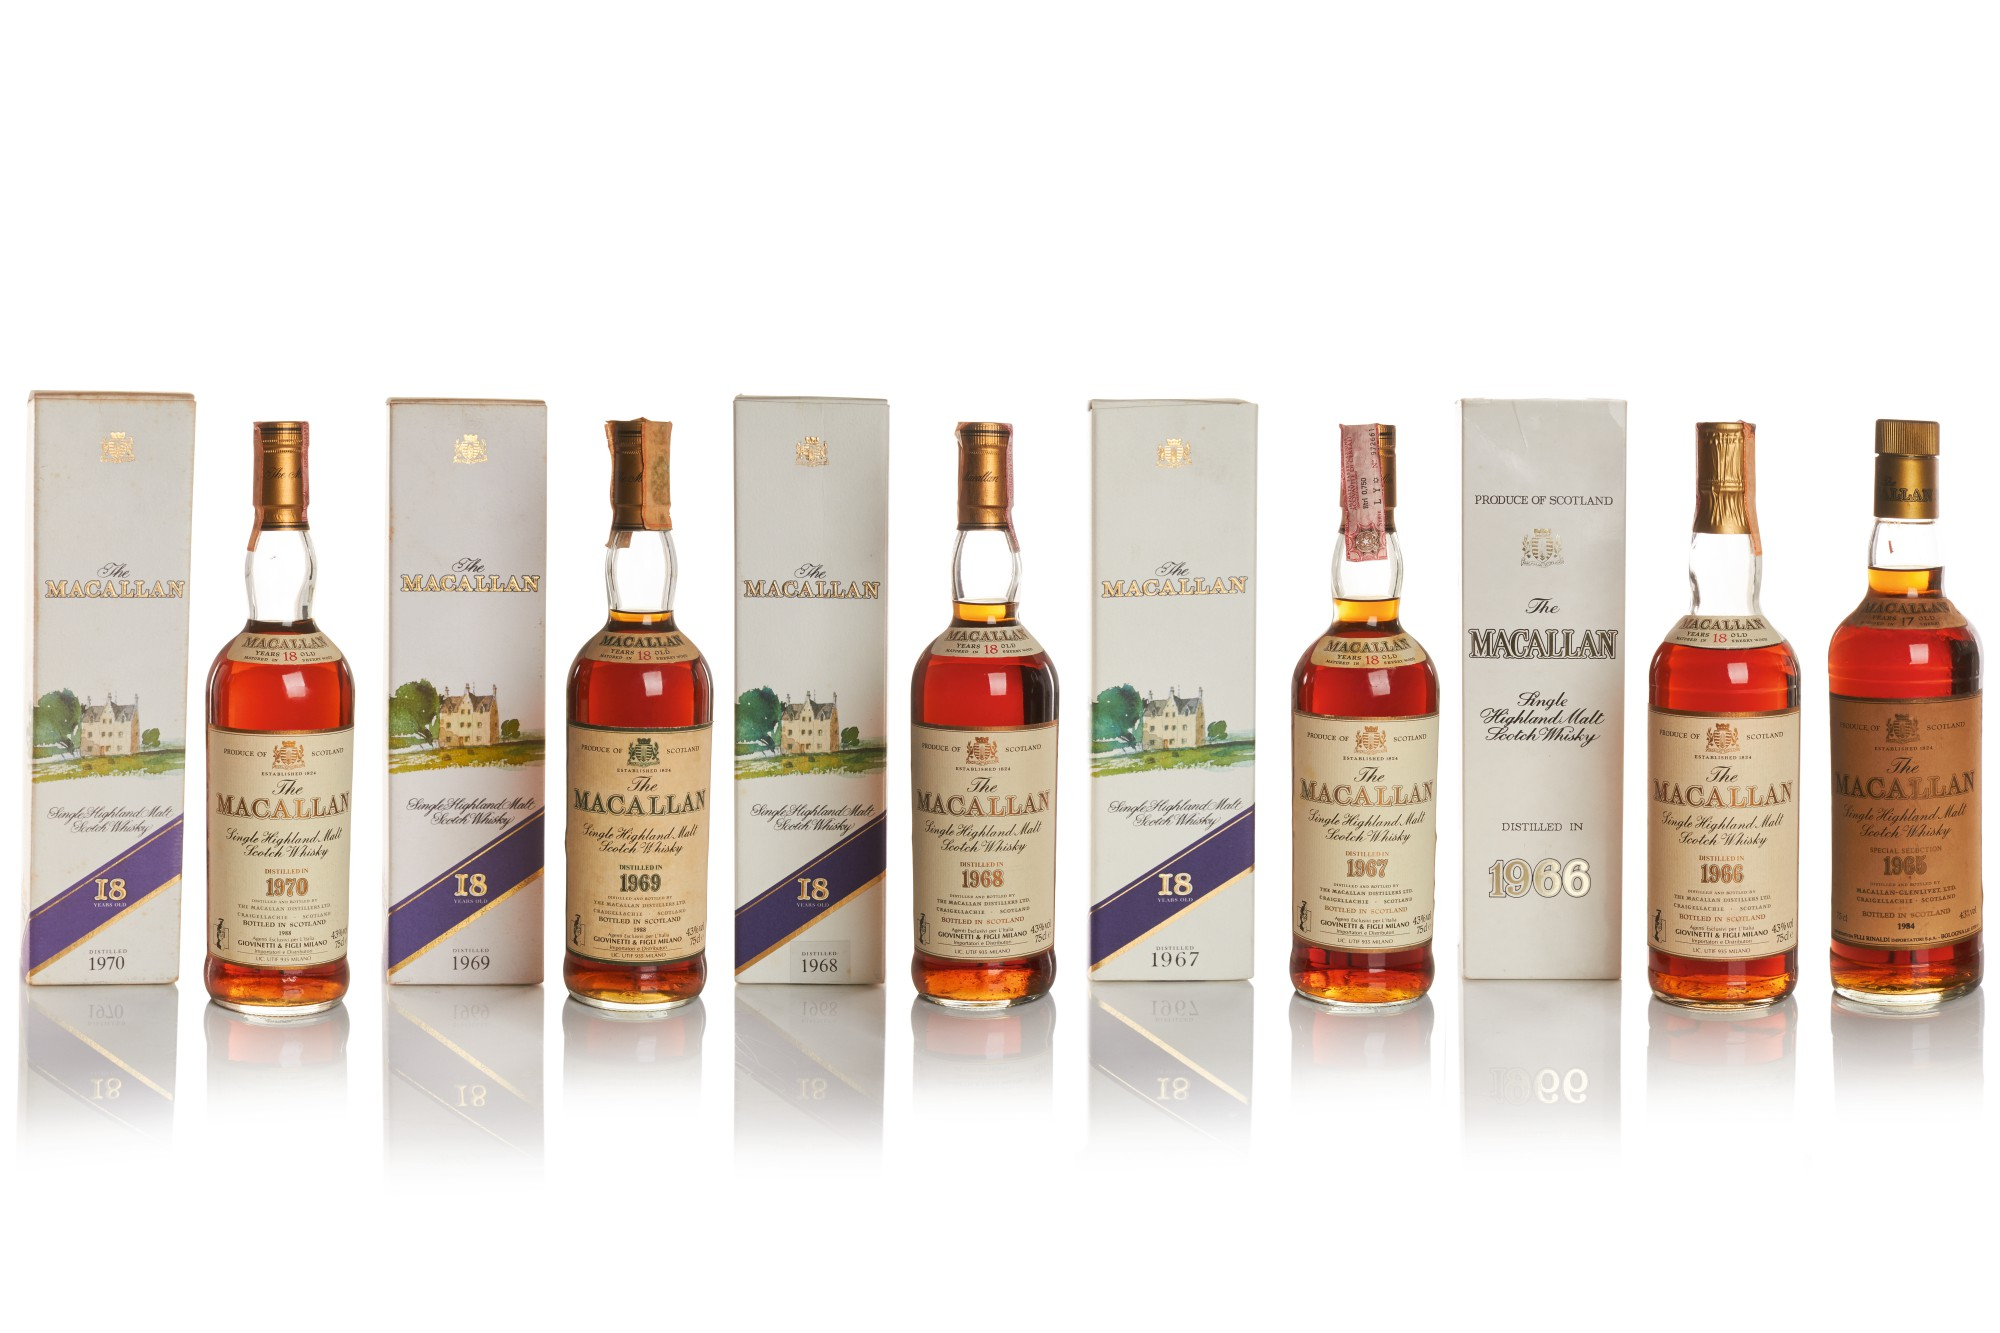 THE MACALLAN 18 YEAR OLD 43.0 ABV 1967